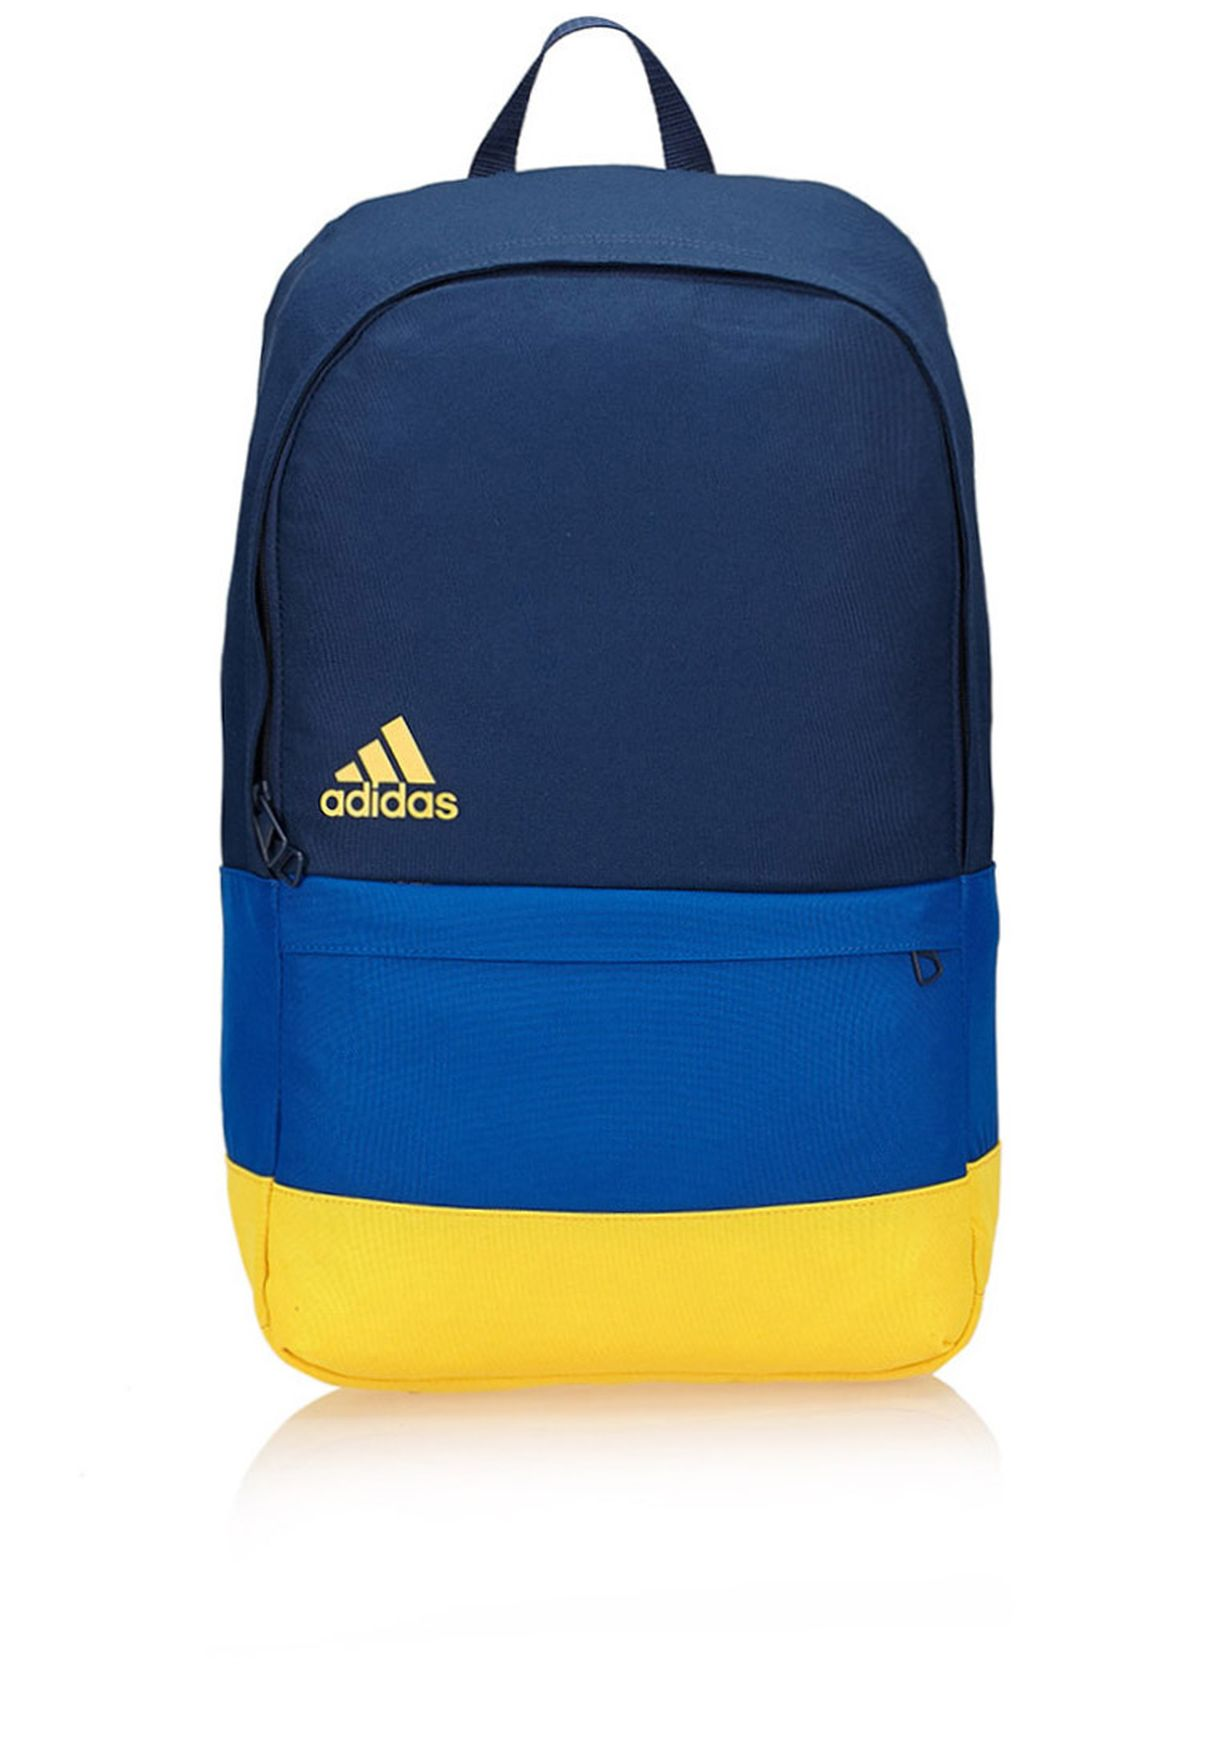 b48ed87d798a Shop adidas blue Versatile Block Backpack M66754 for Men in Oman -  AD476AC27RSI